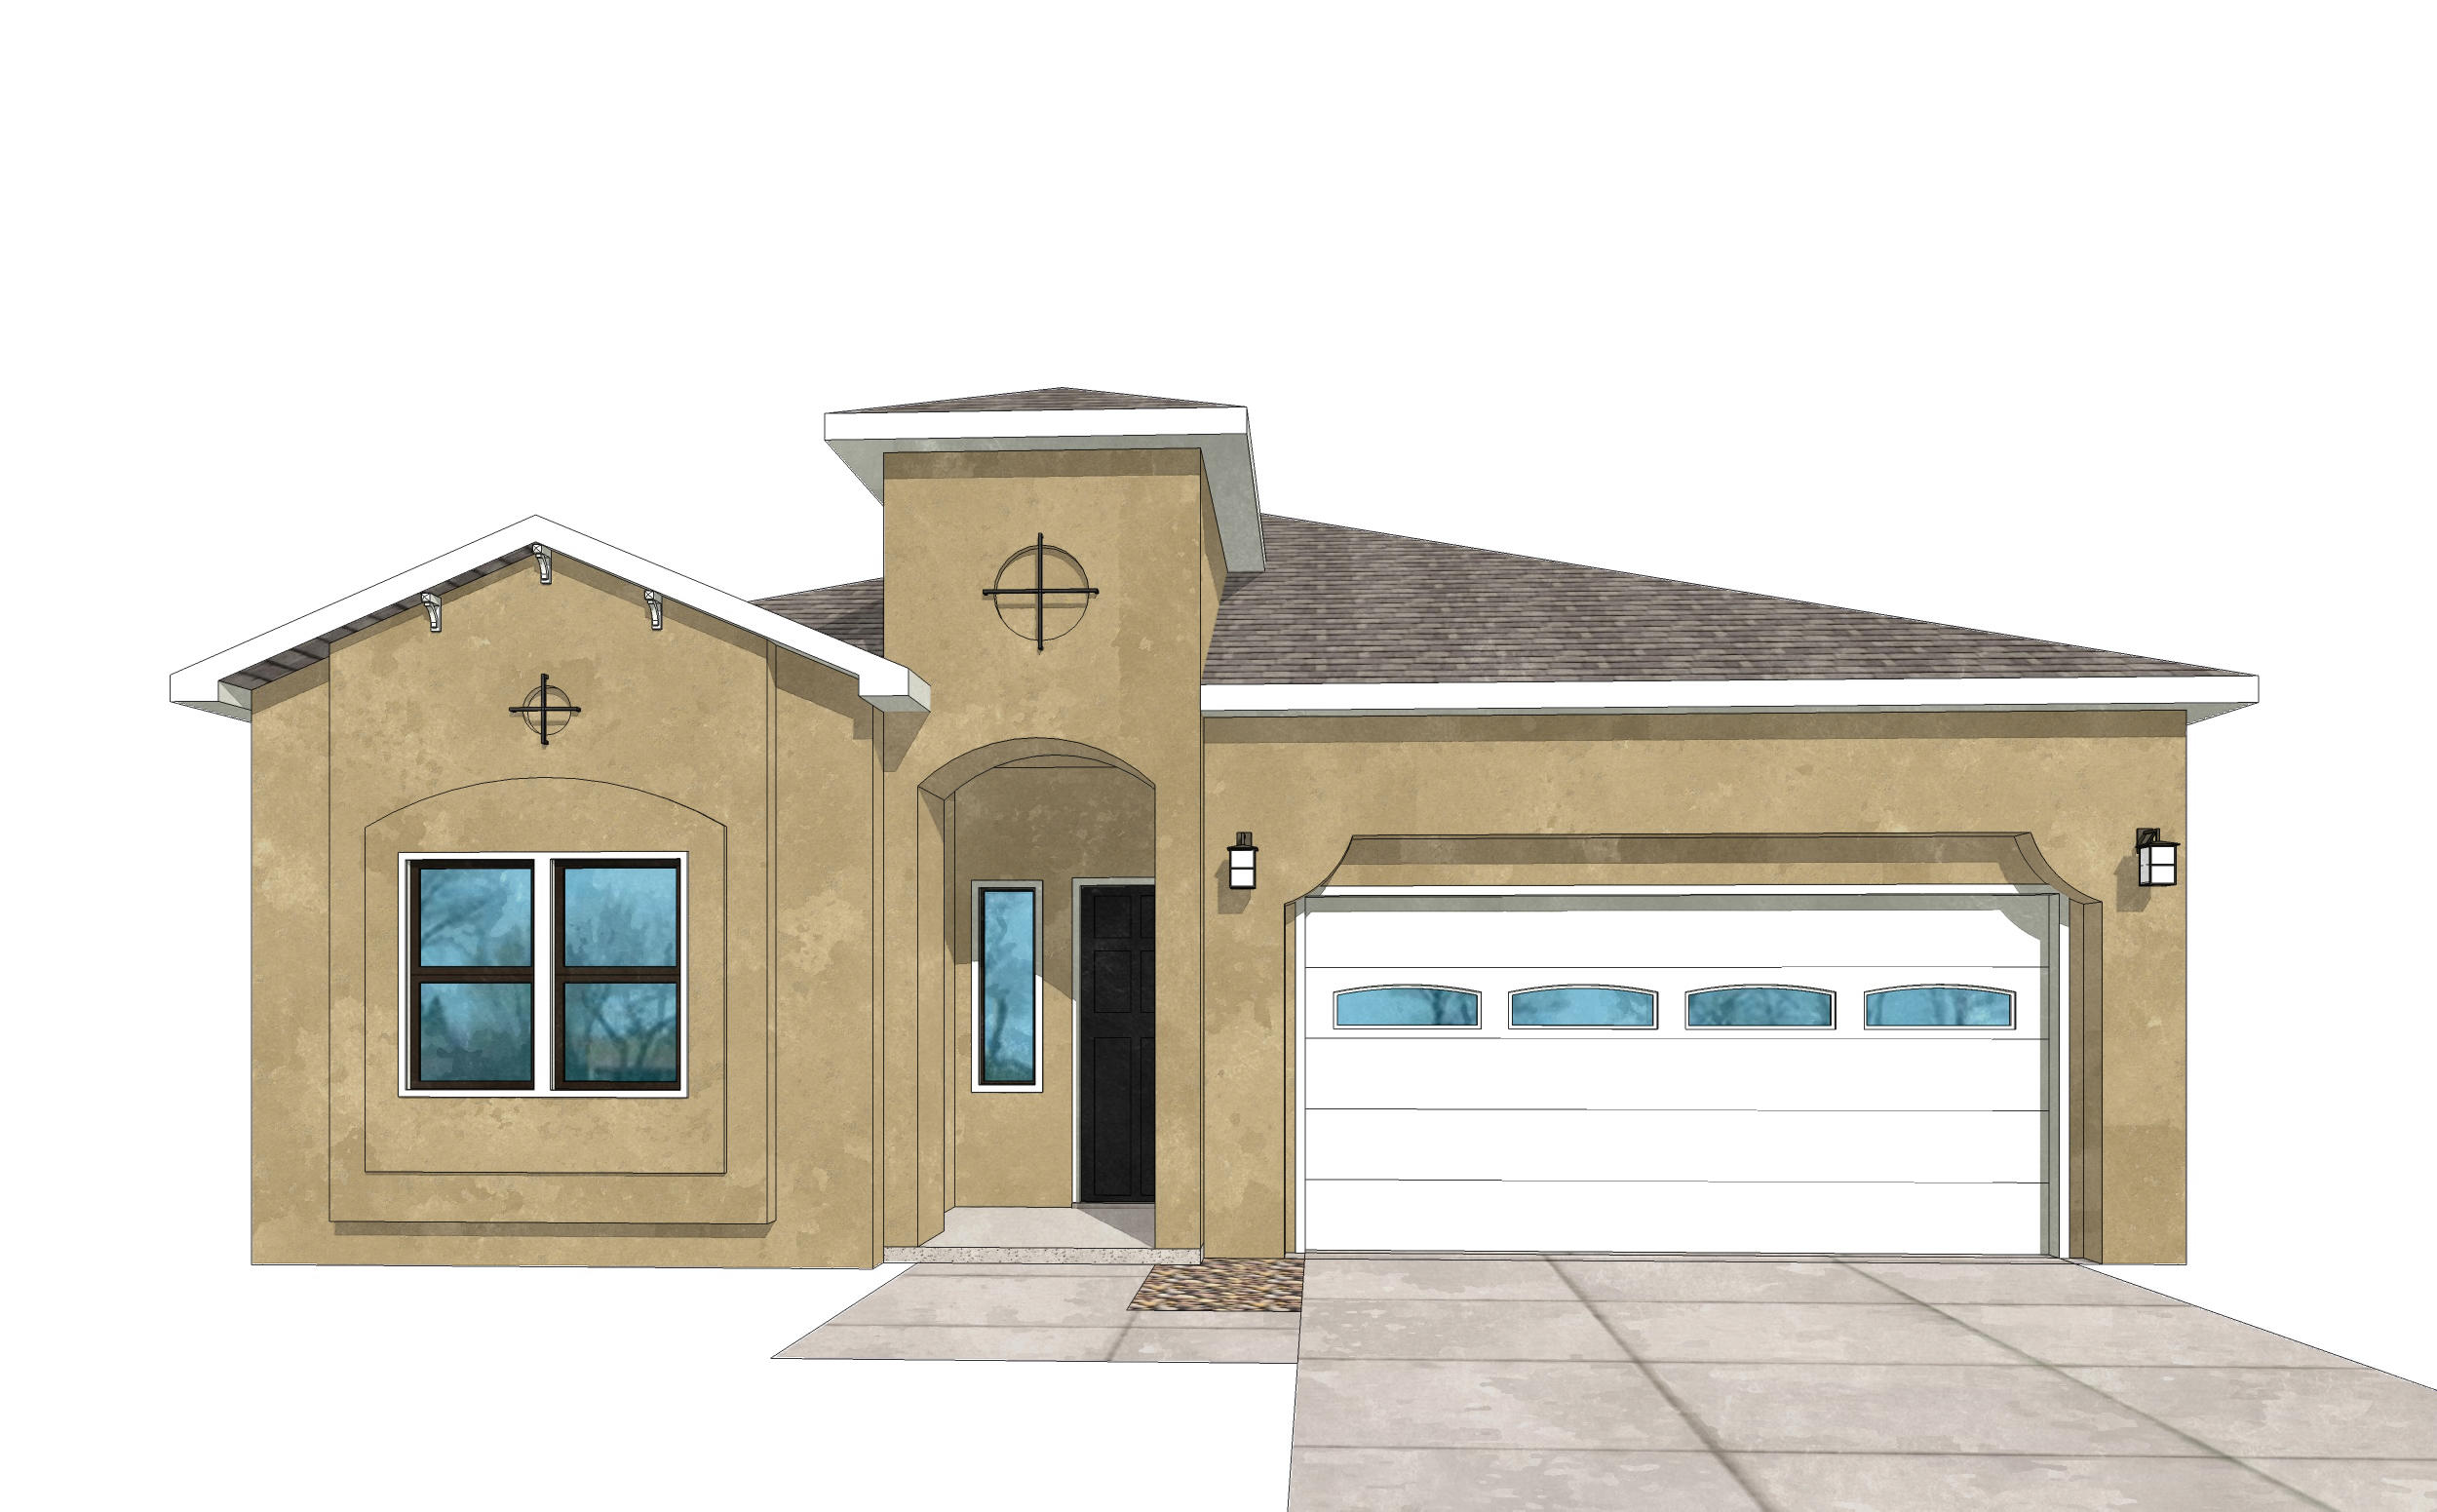 UNDER CONSTRUCTION. Pictures are model representations. Colors and selections may vary. Beautiful home will be ready for Sep move in. Living area features gas FP & double sliders opening to cvrd patio. Granite in Kitchen & baths, ceramic tile surrounds in shower and bath, Samsung SS appliances including gas stove, microwave, SxS refrigerator, dishwasher and washer and dryer (in white). Blinds throughout, 9' ceilings w/10' coffers in LR and master, ceramic tile floors in entry, kitchen, baths, laundry room as well as dining area. 8' tall oversized garage door with opener, recessed LED disc lighting. Energy efficient- Build Green NM Silver rated, LowE, vinyl dual pane windows, 95% efficient gas furnace, programmable thermostat. Dual wall and rain head shower heads in master. Stunning floorp